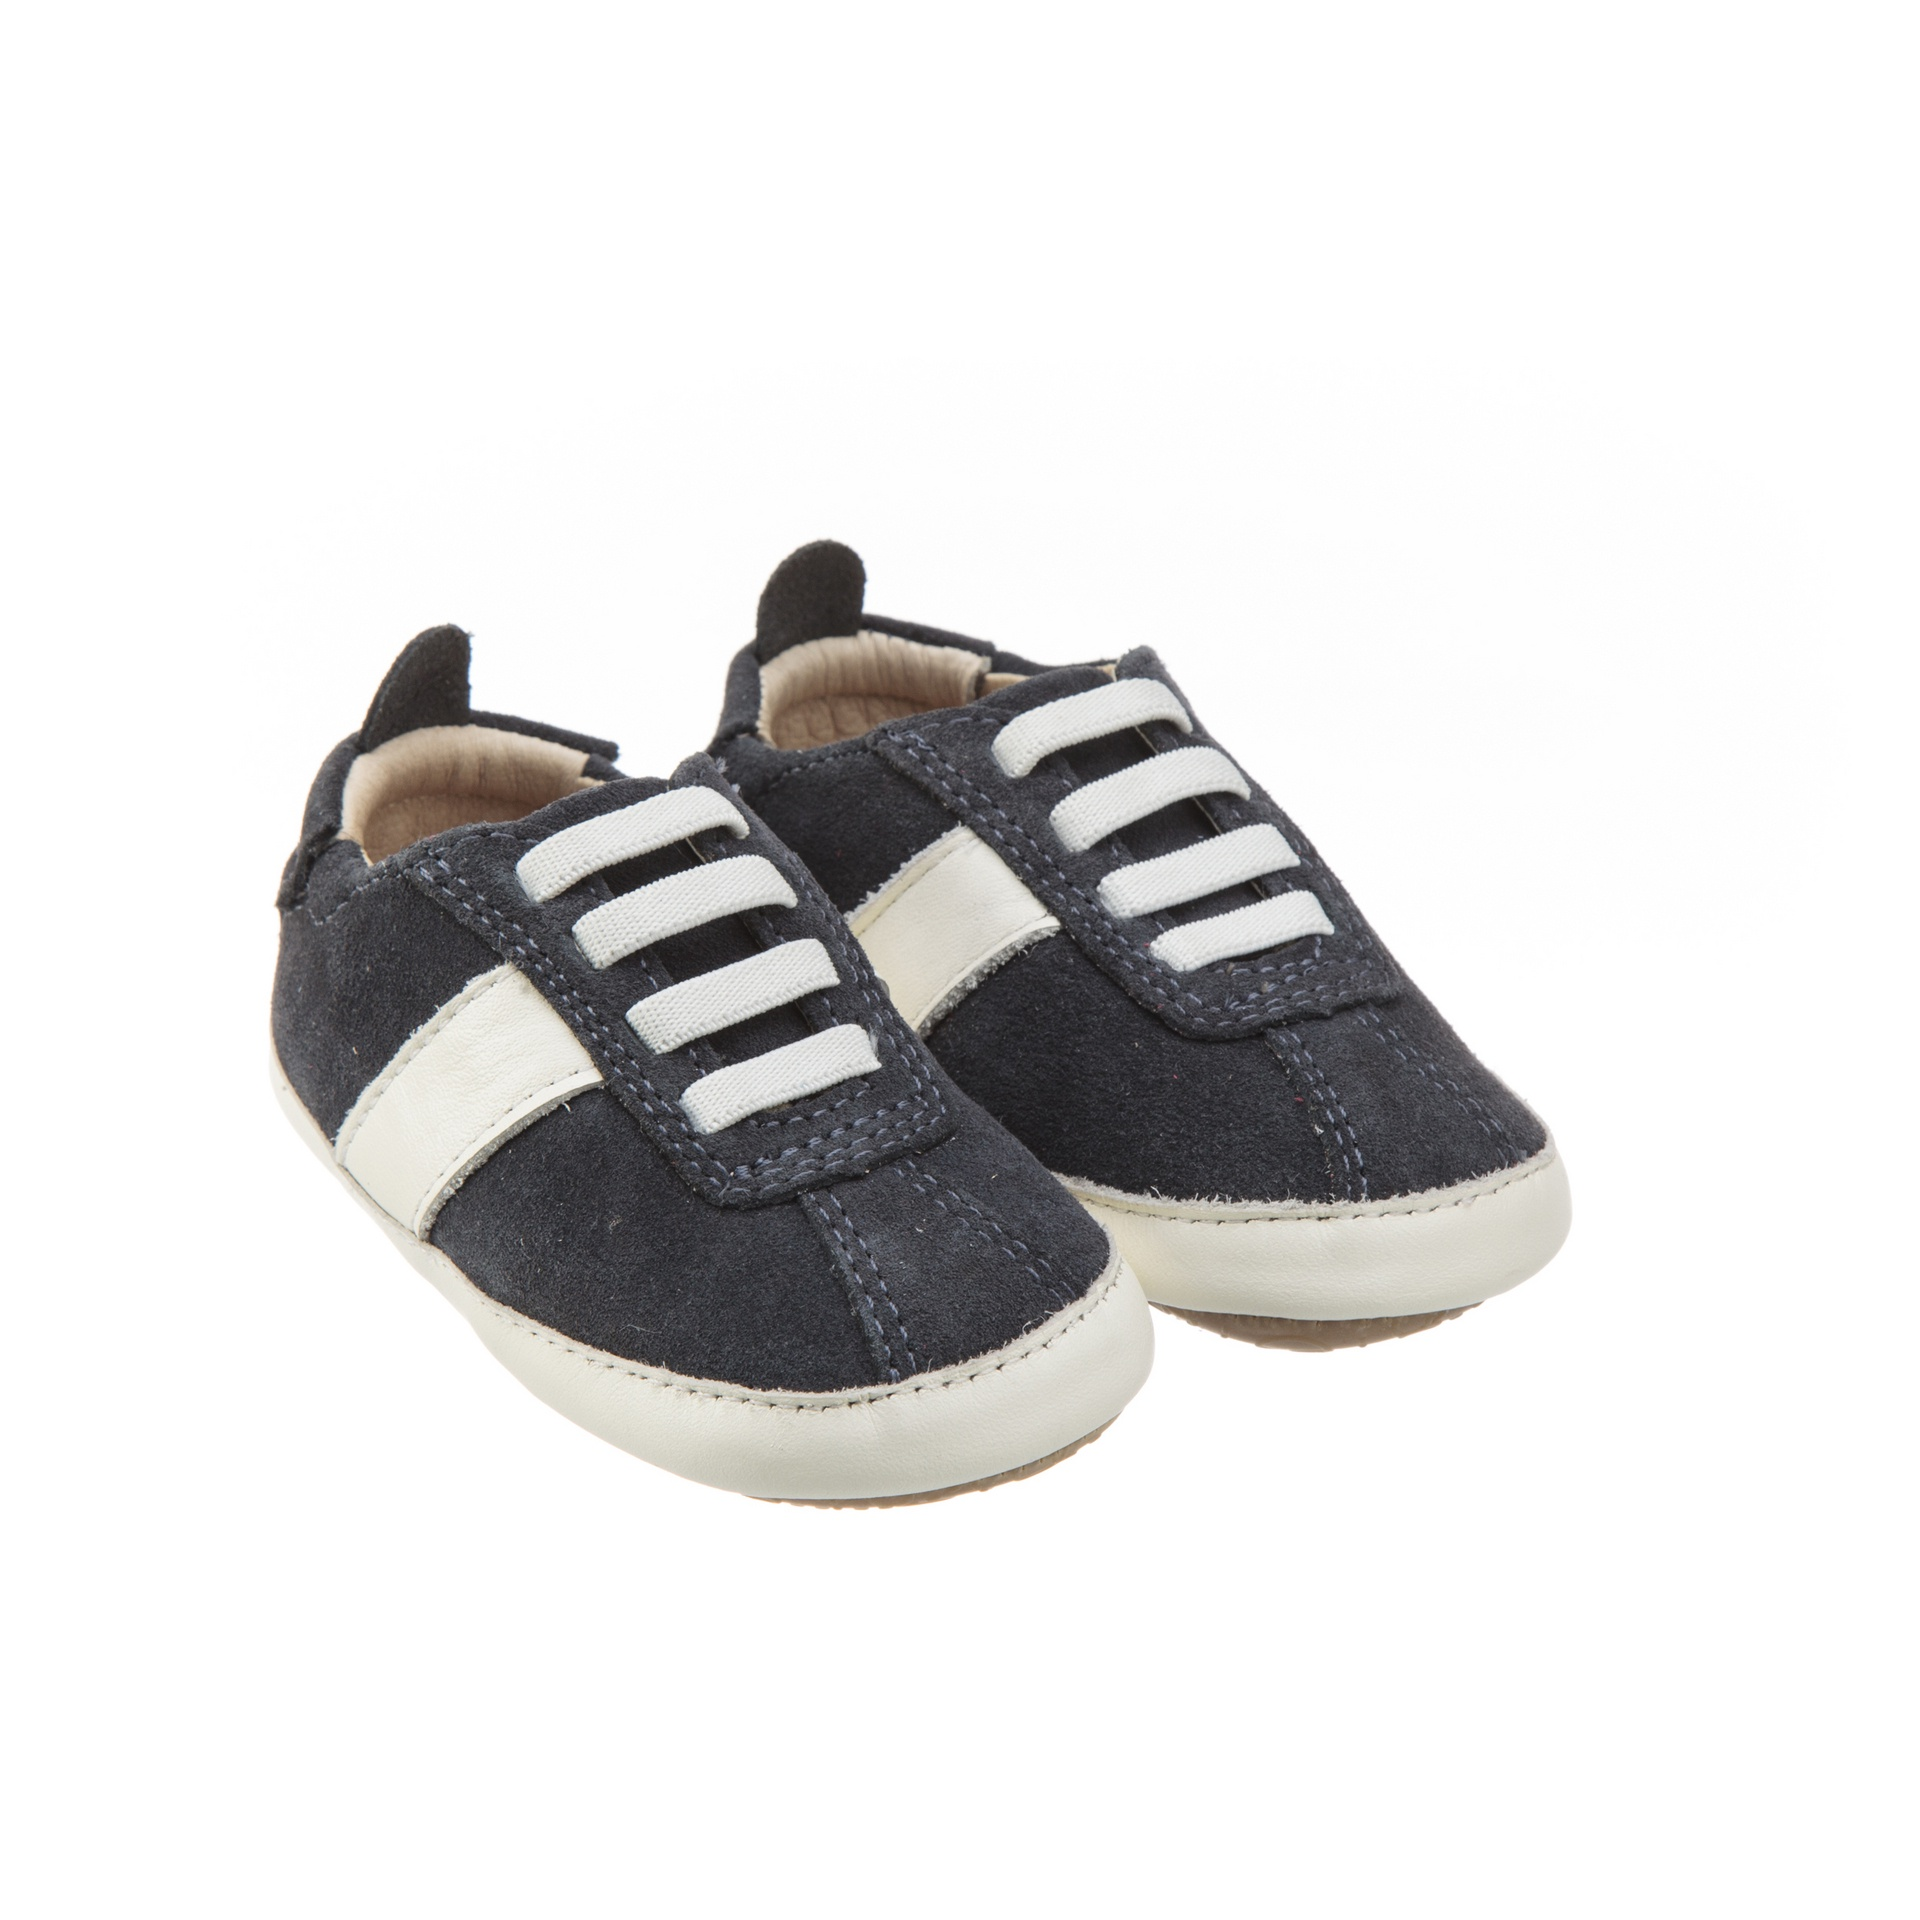 Old Soles Vintage Bambini Navy Suede White